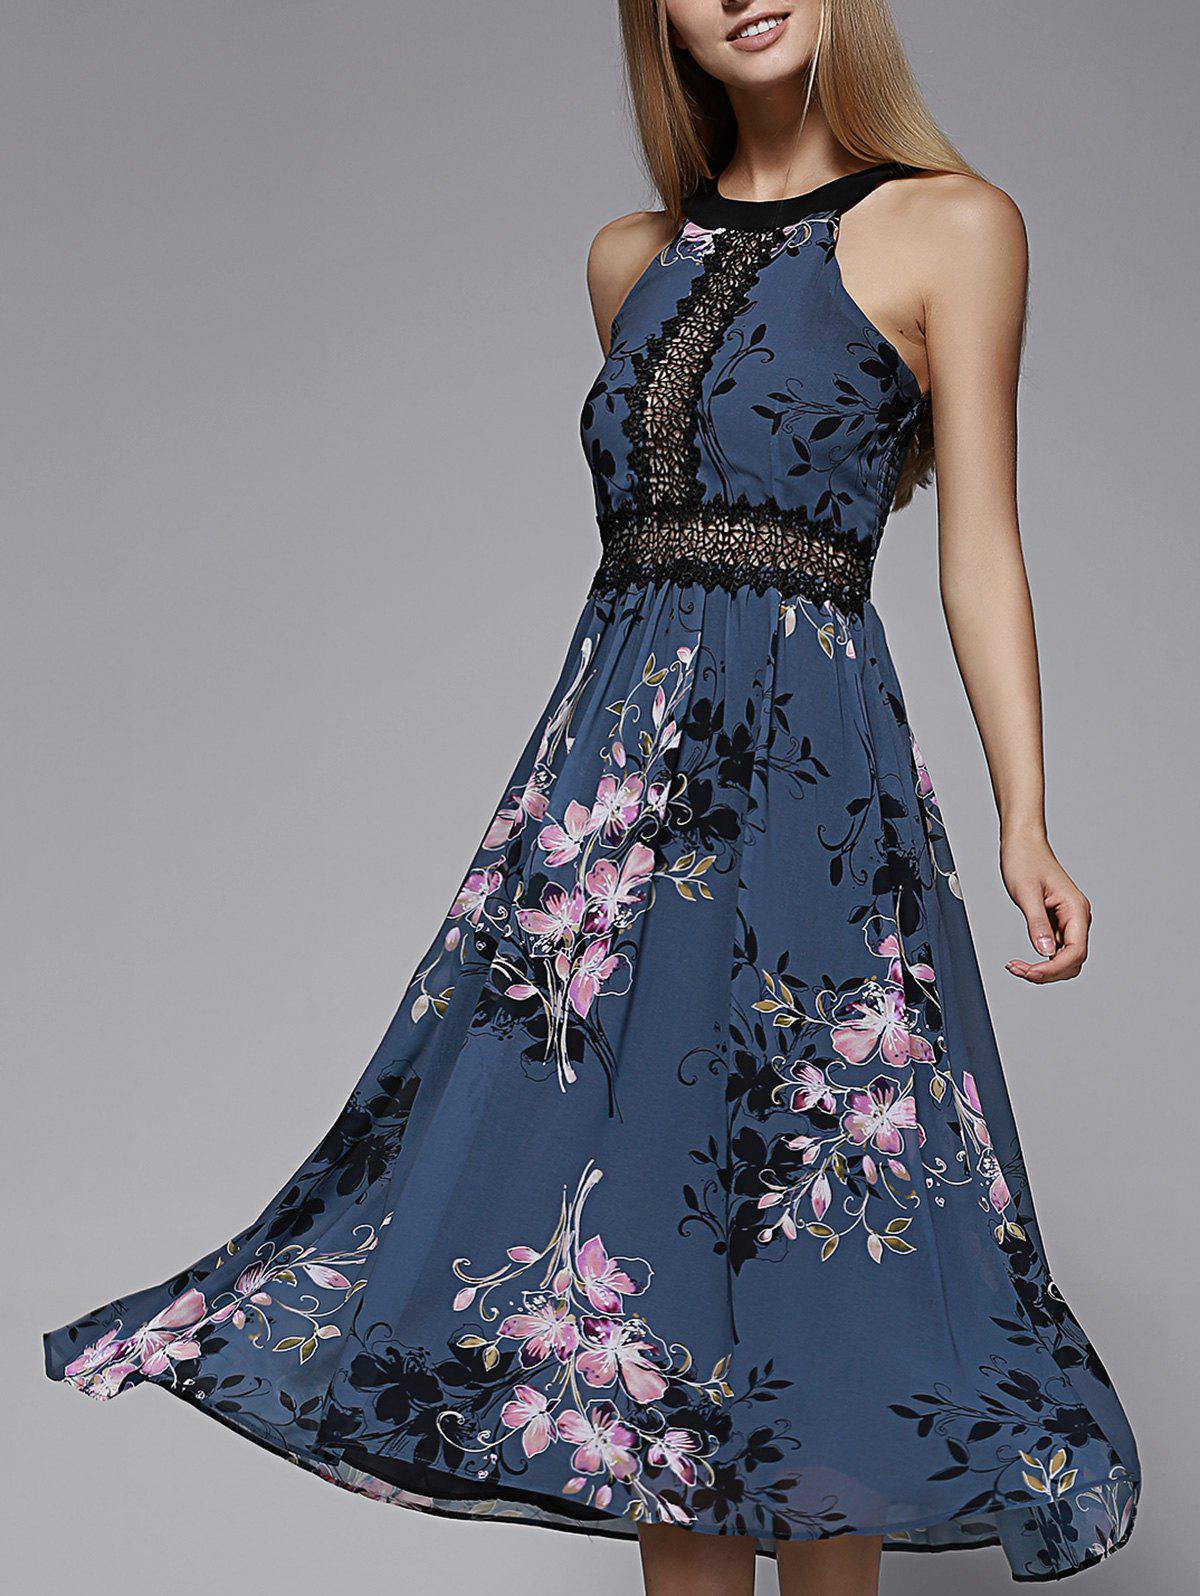 Charming Sleeveless Hollow Out Lace Spliced Floral Print Women's Dress - CADETBLUE L